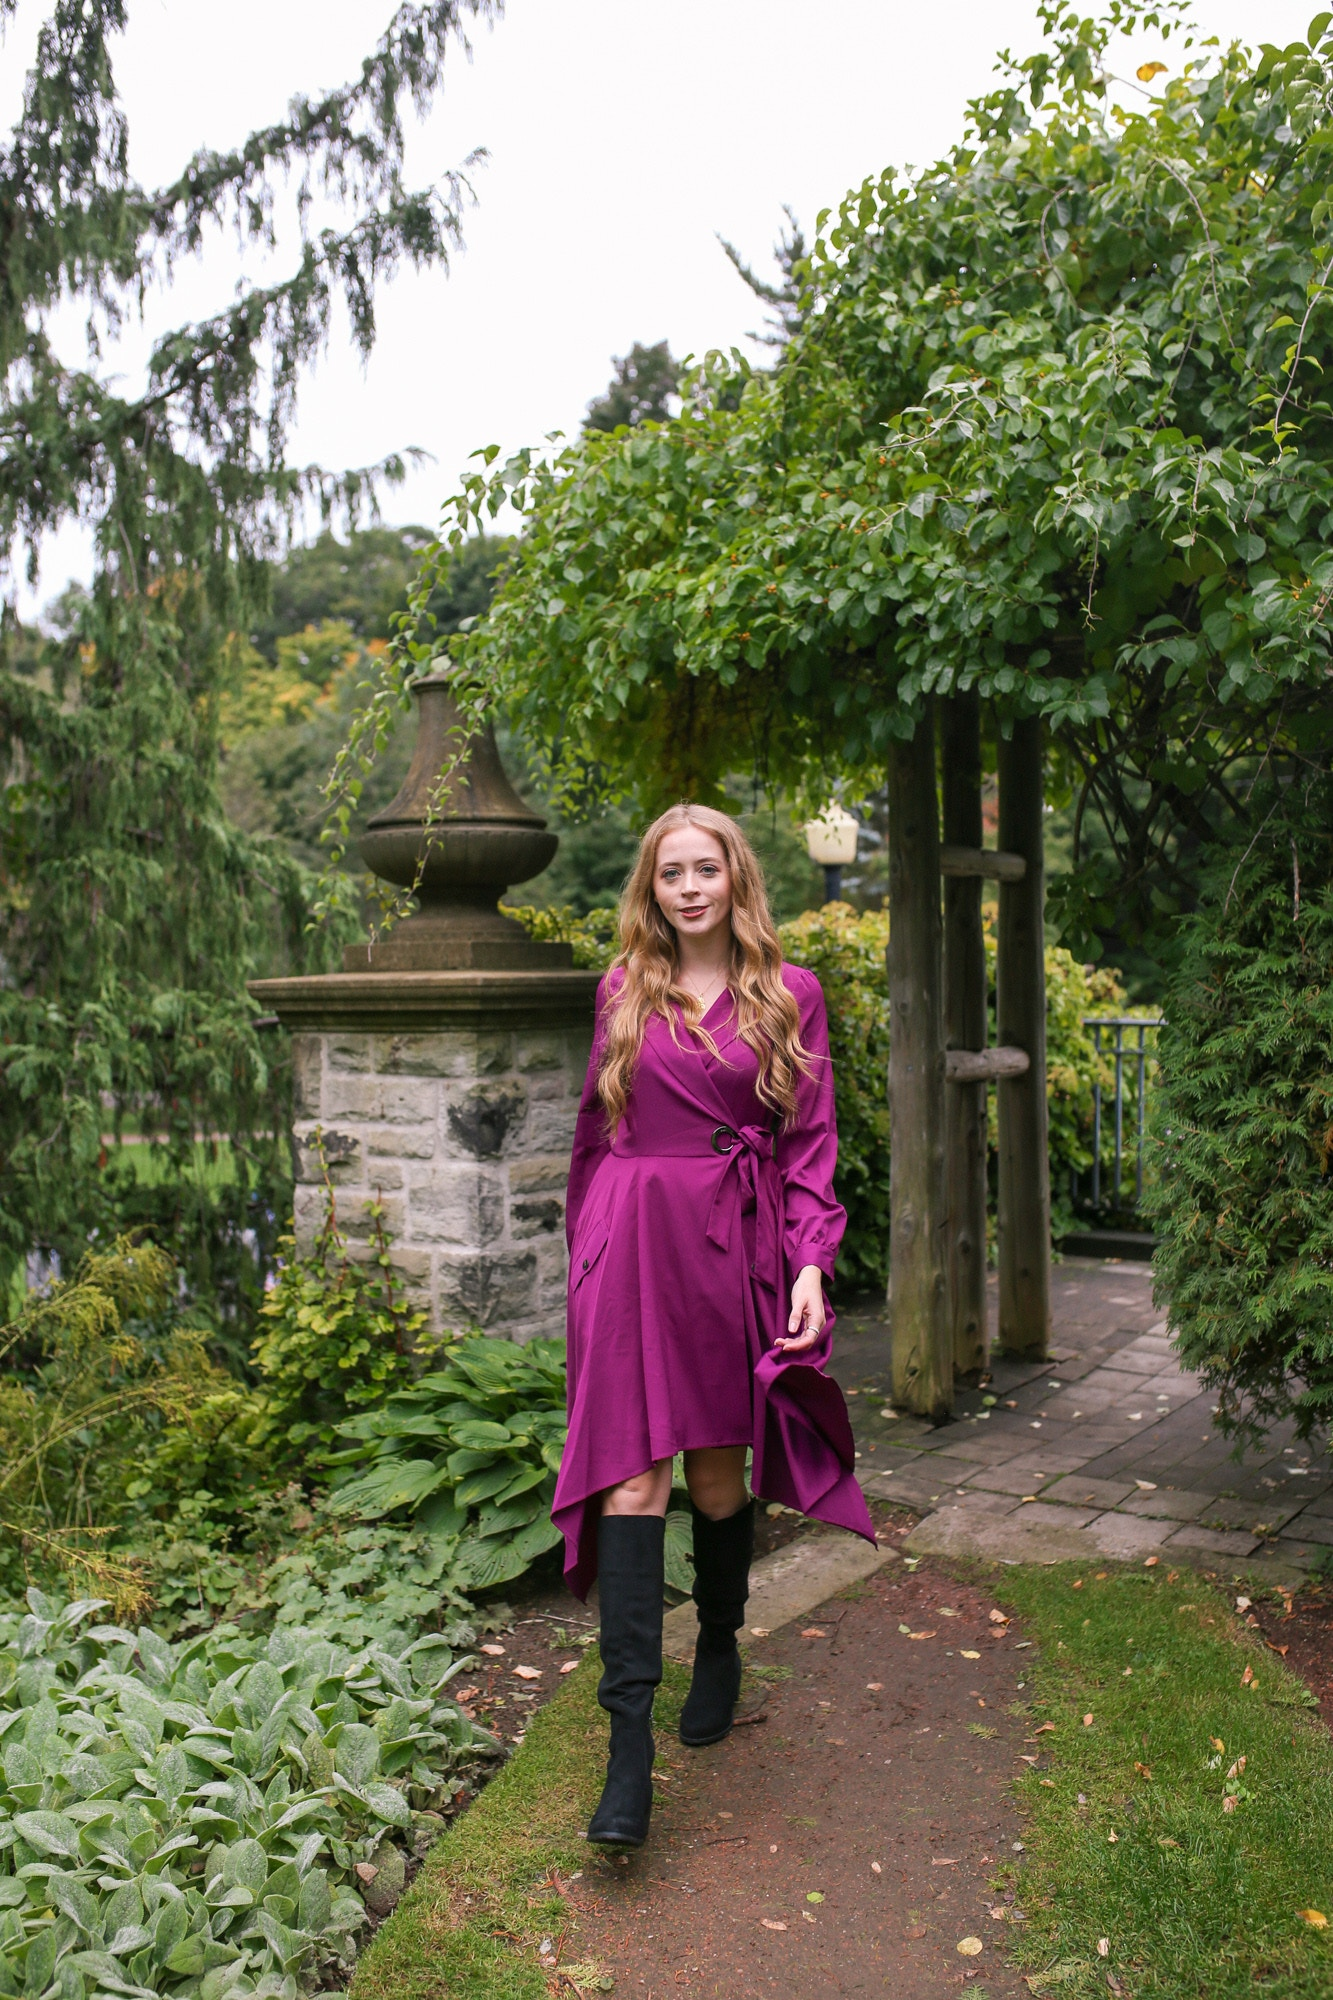 Chriselle Lim Collection Review: Wren Trench Dress and Unisa Indyia Over the Knee boots from DSW.